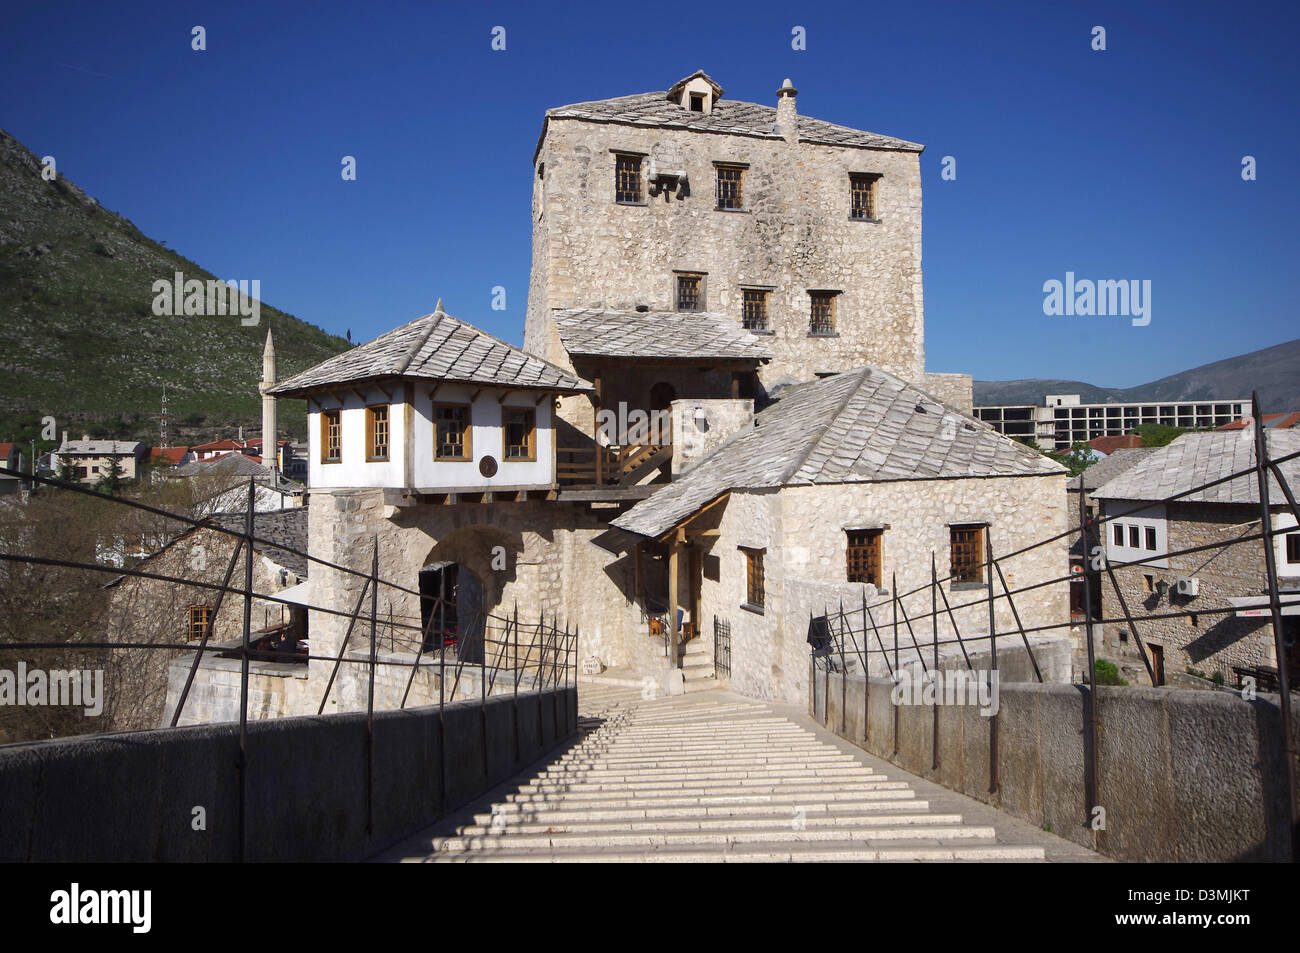 Old Bridge - built 16Th century in Mostar, Bosnia and Herzegovina. Crosses the river Neretva connects Moslems and - Stock Image